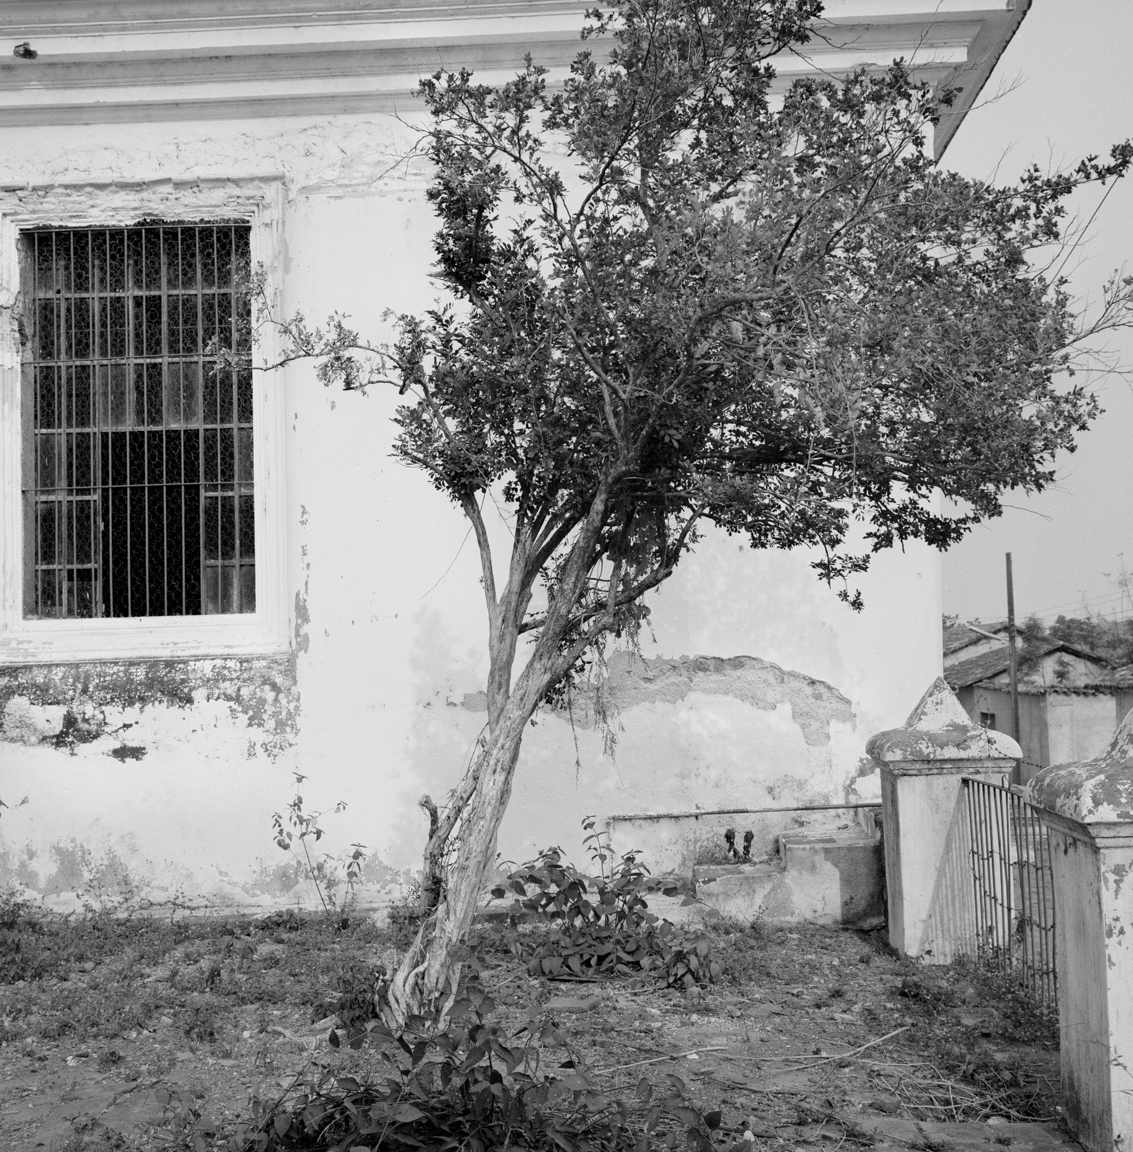 A tree stands in front of a partially abandoned municipal government building May 10, 1983 in Cinquera, El Salvador. Cinquera was often held by People's Liberation Forces (FPL) guerrillas with sporadic presence of central government officials.